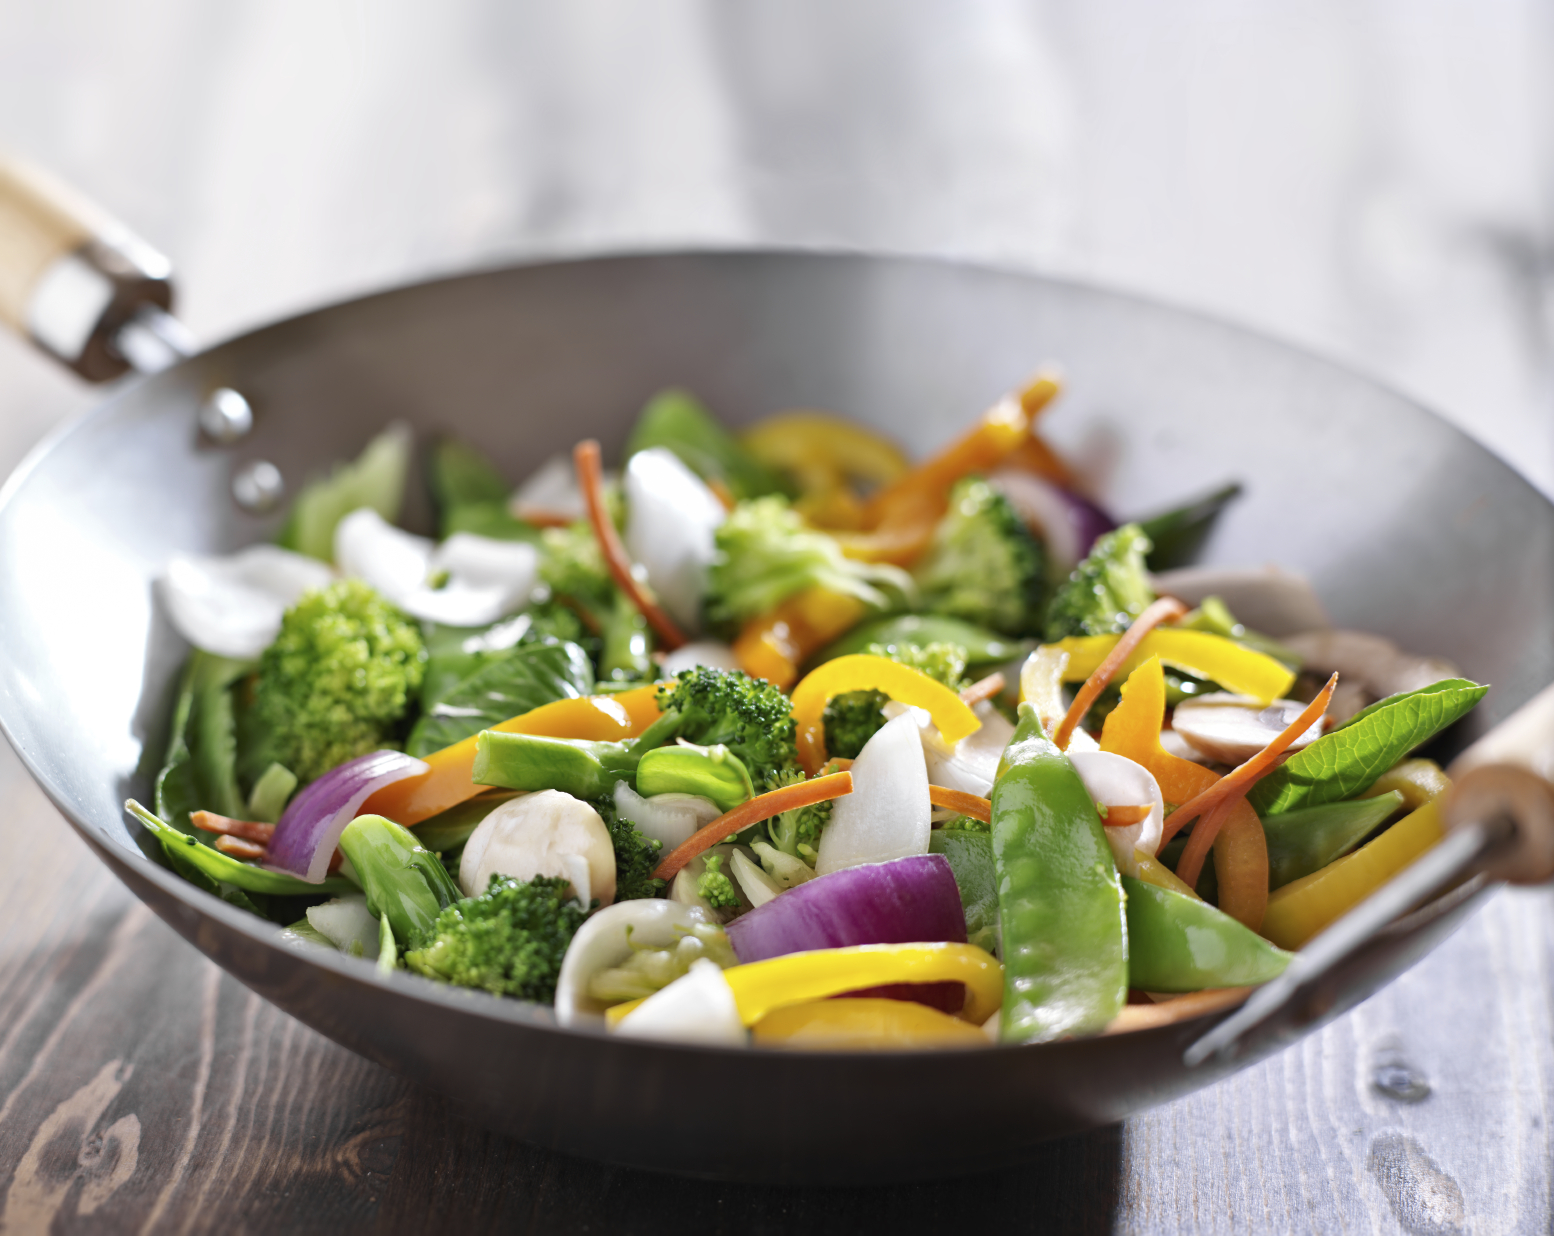 Recipe for ginger veggies stirfry